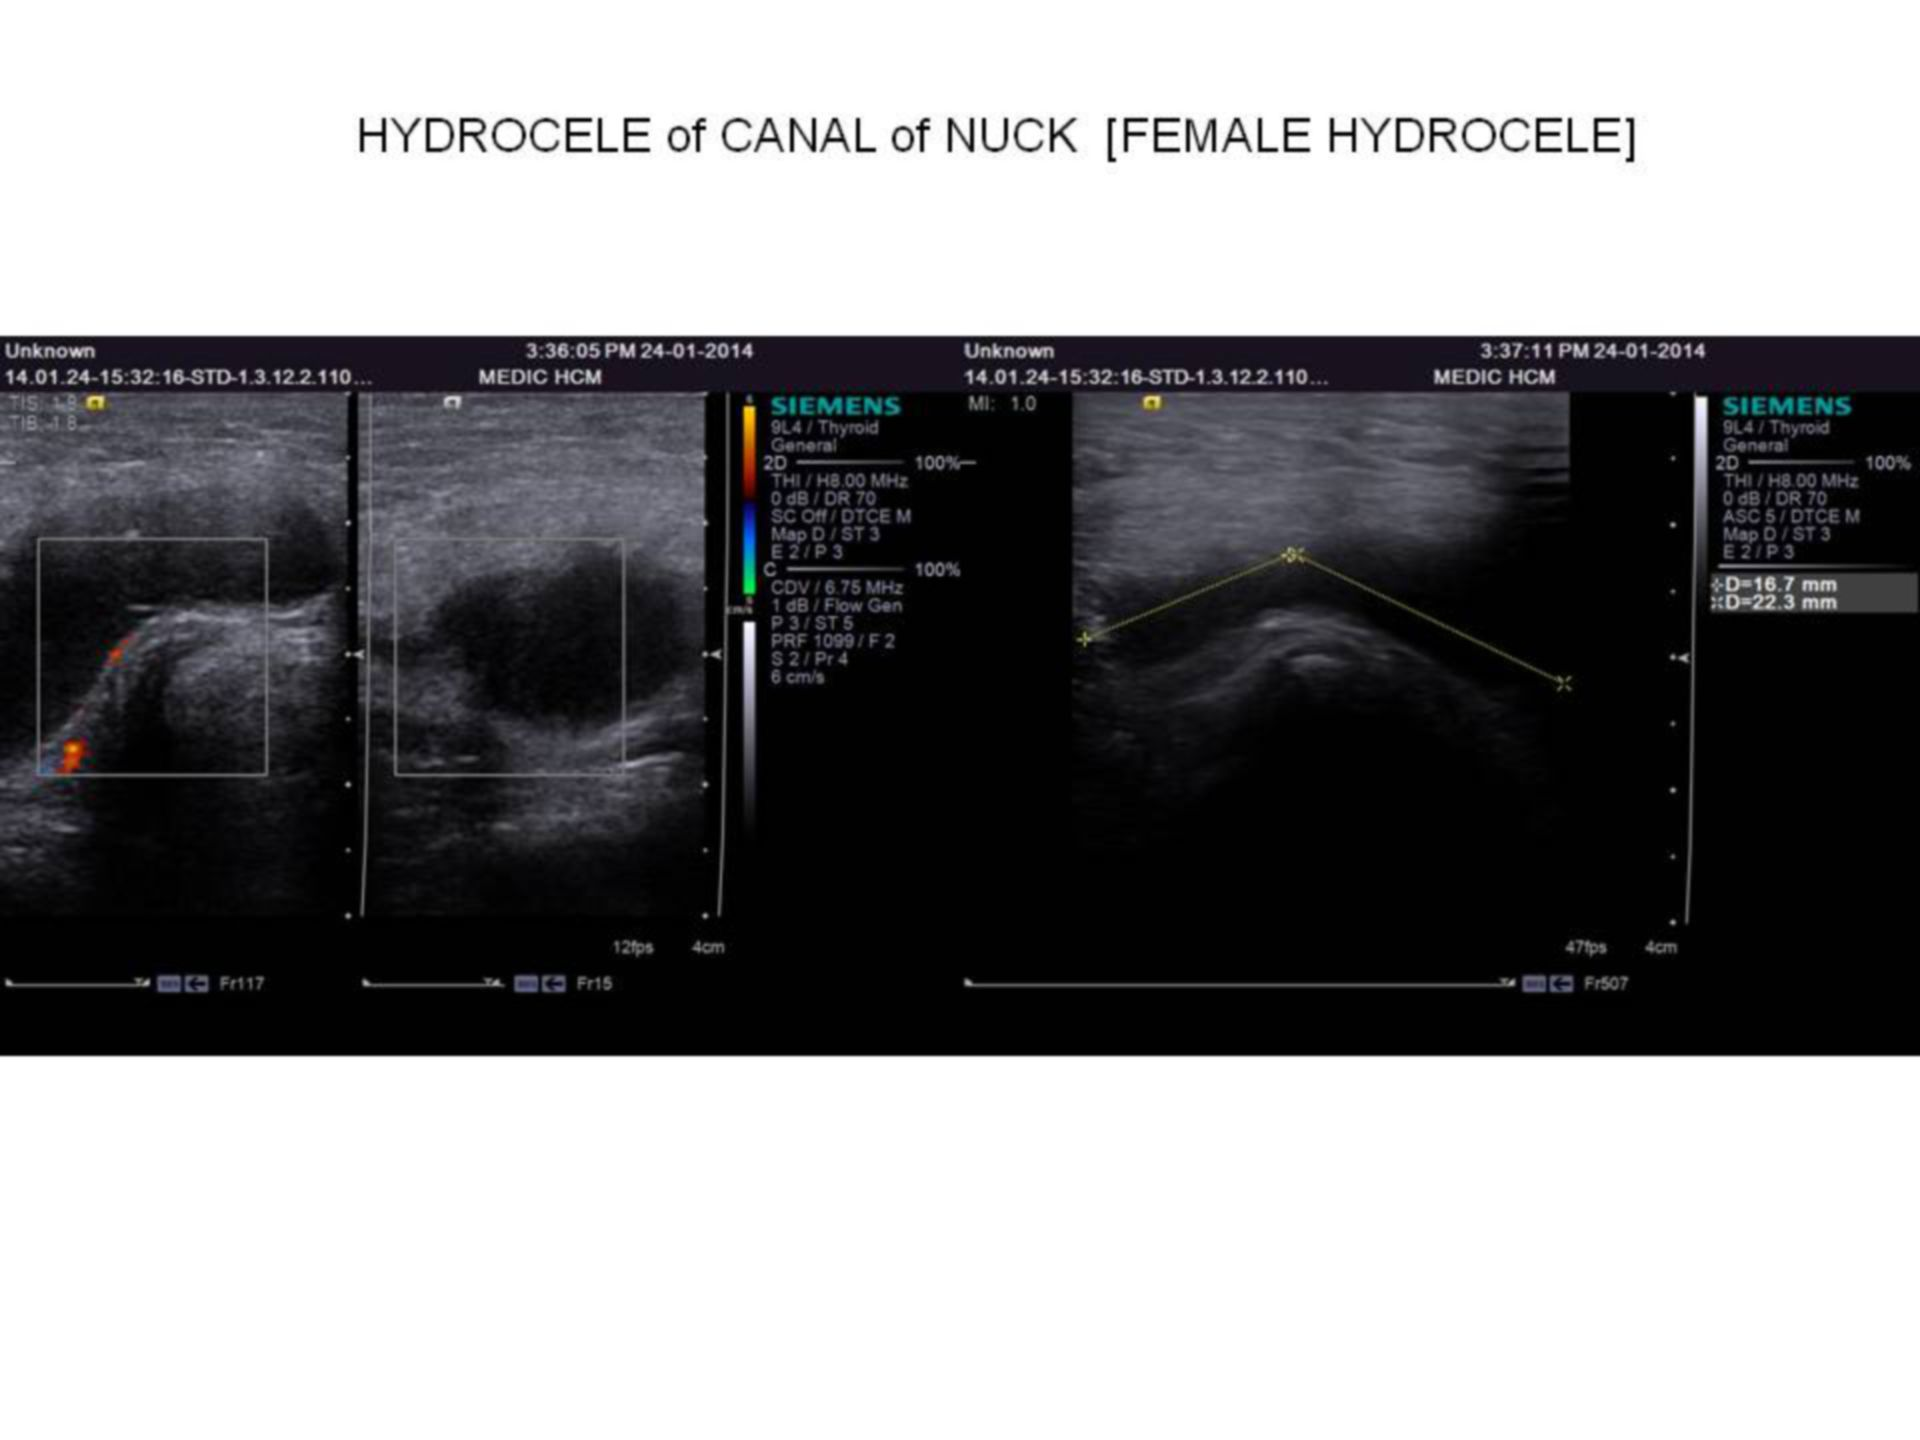 Hydrocele of canal of nuck